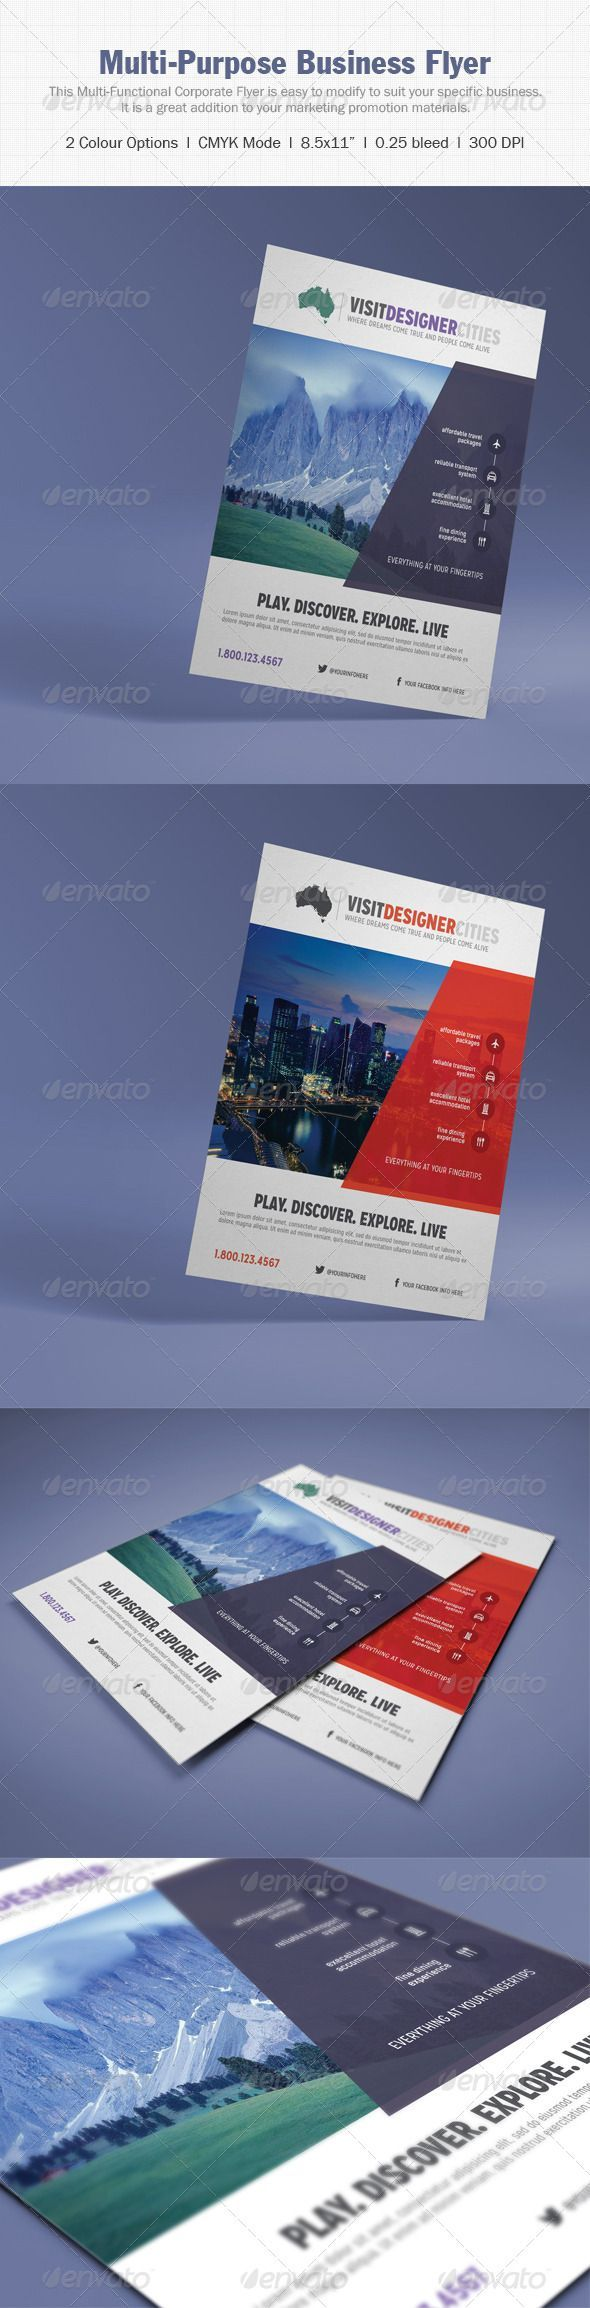 Multi-Purpose Corporate Flyer - Corporate Business Cards